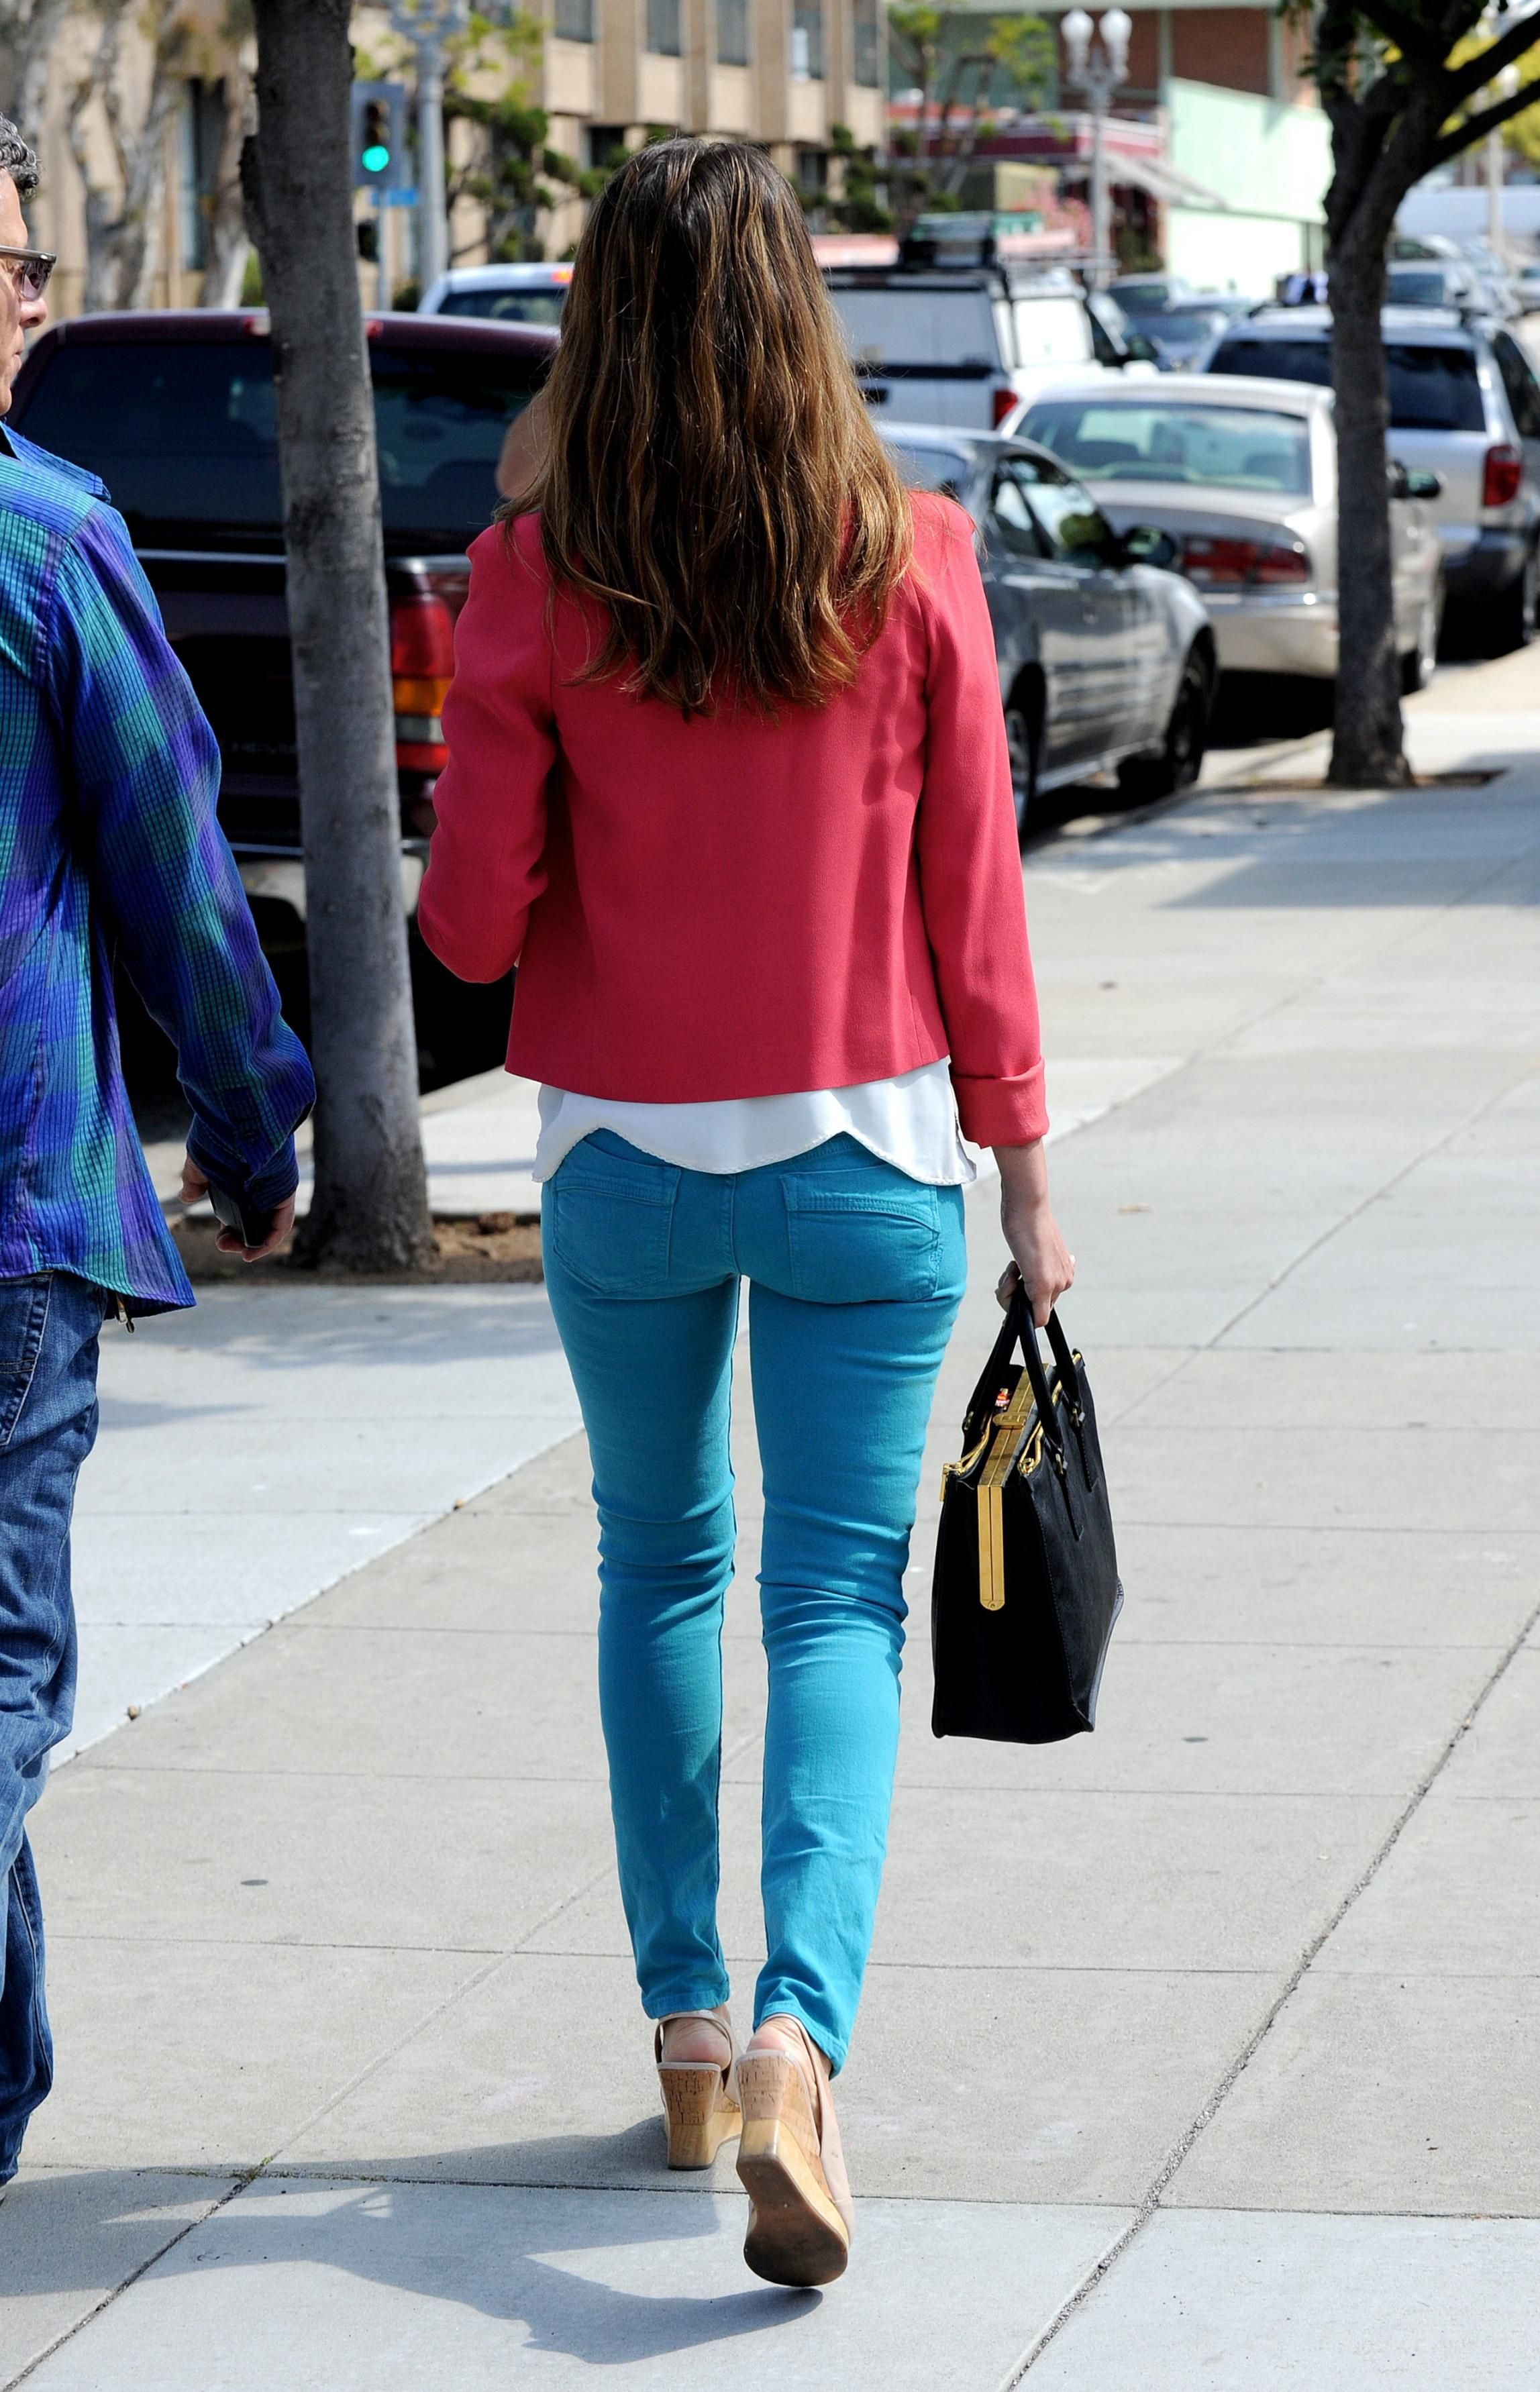 Jessica Alba Was Wearing Pink Blazer And Turquoise Jeans Including Her Fucking Booty